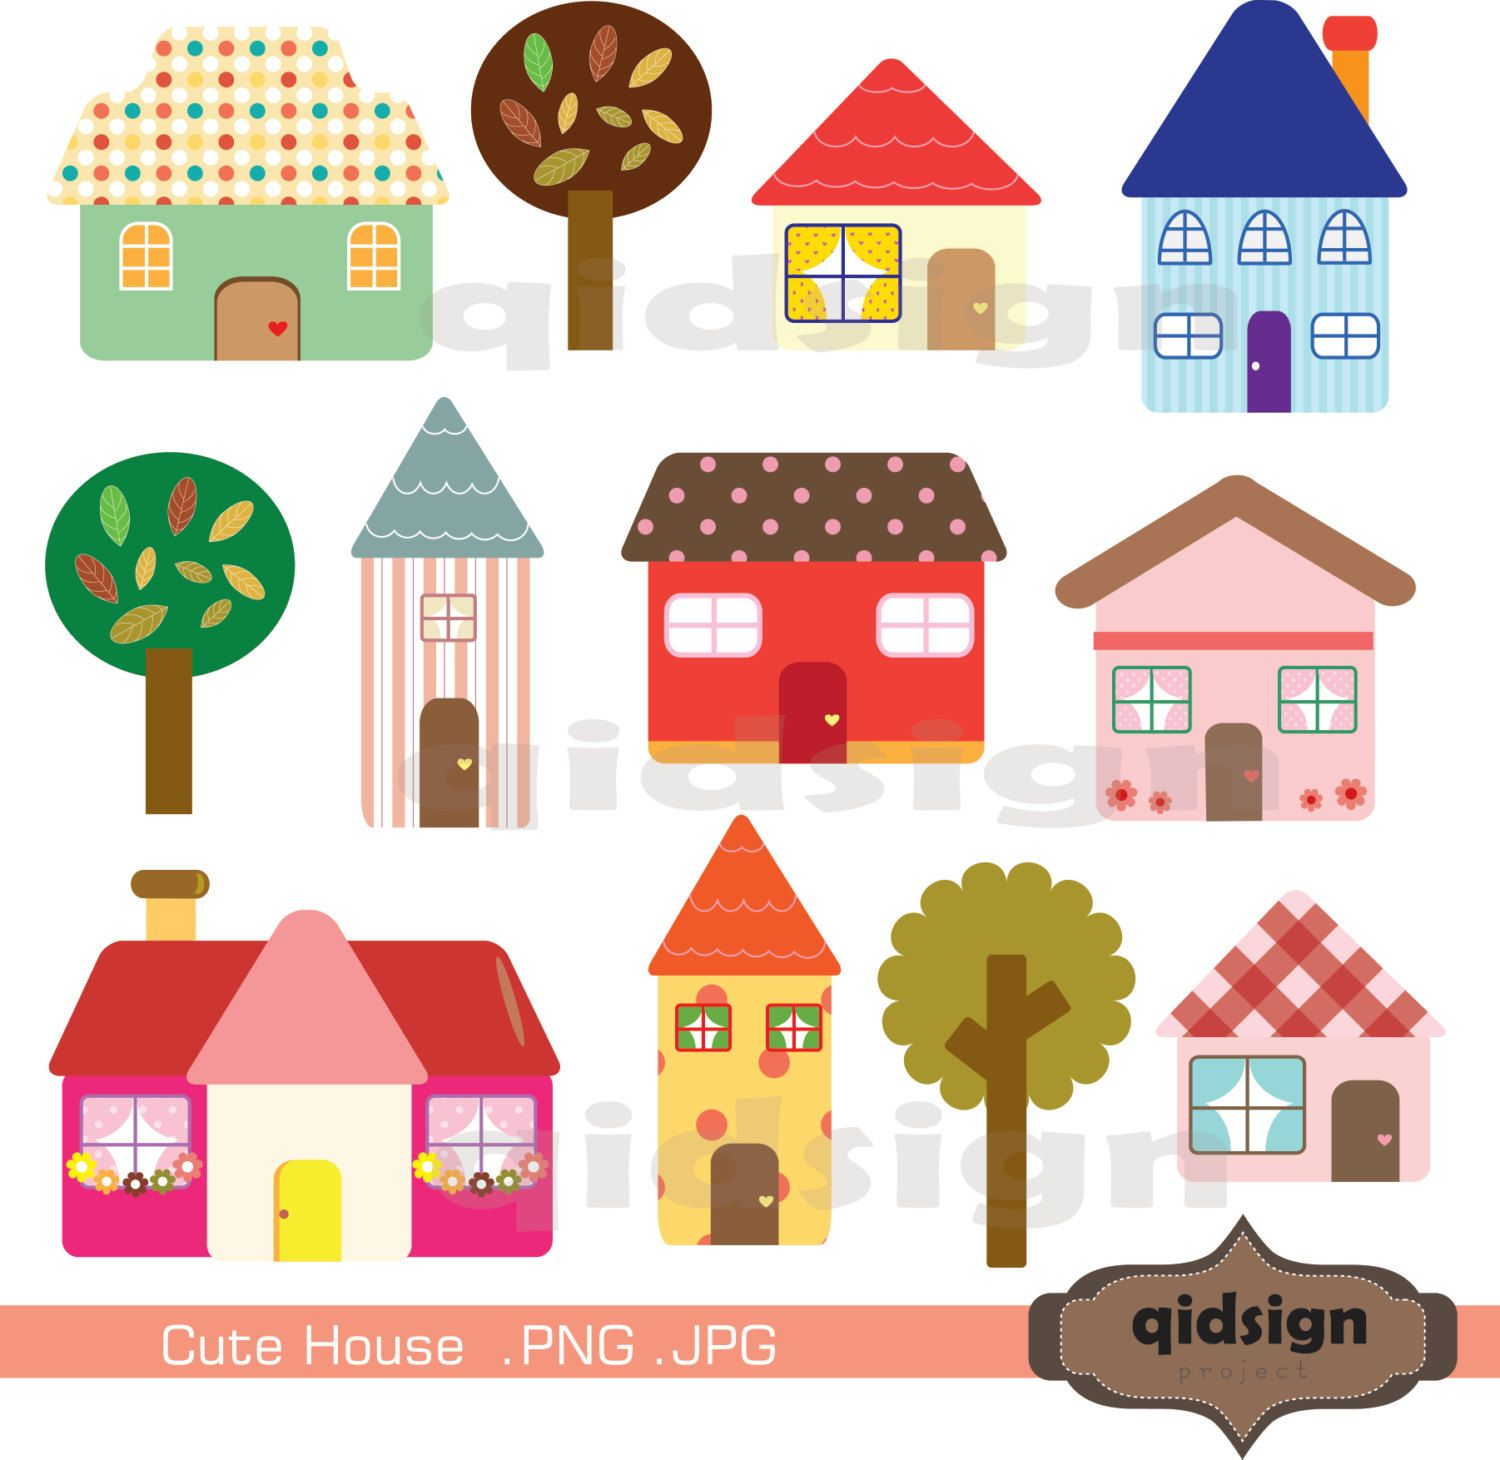 Cute House Clipart Personal and Commercial UseDigital.